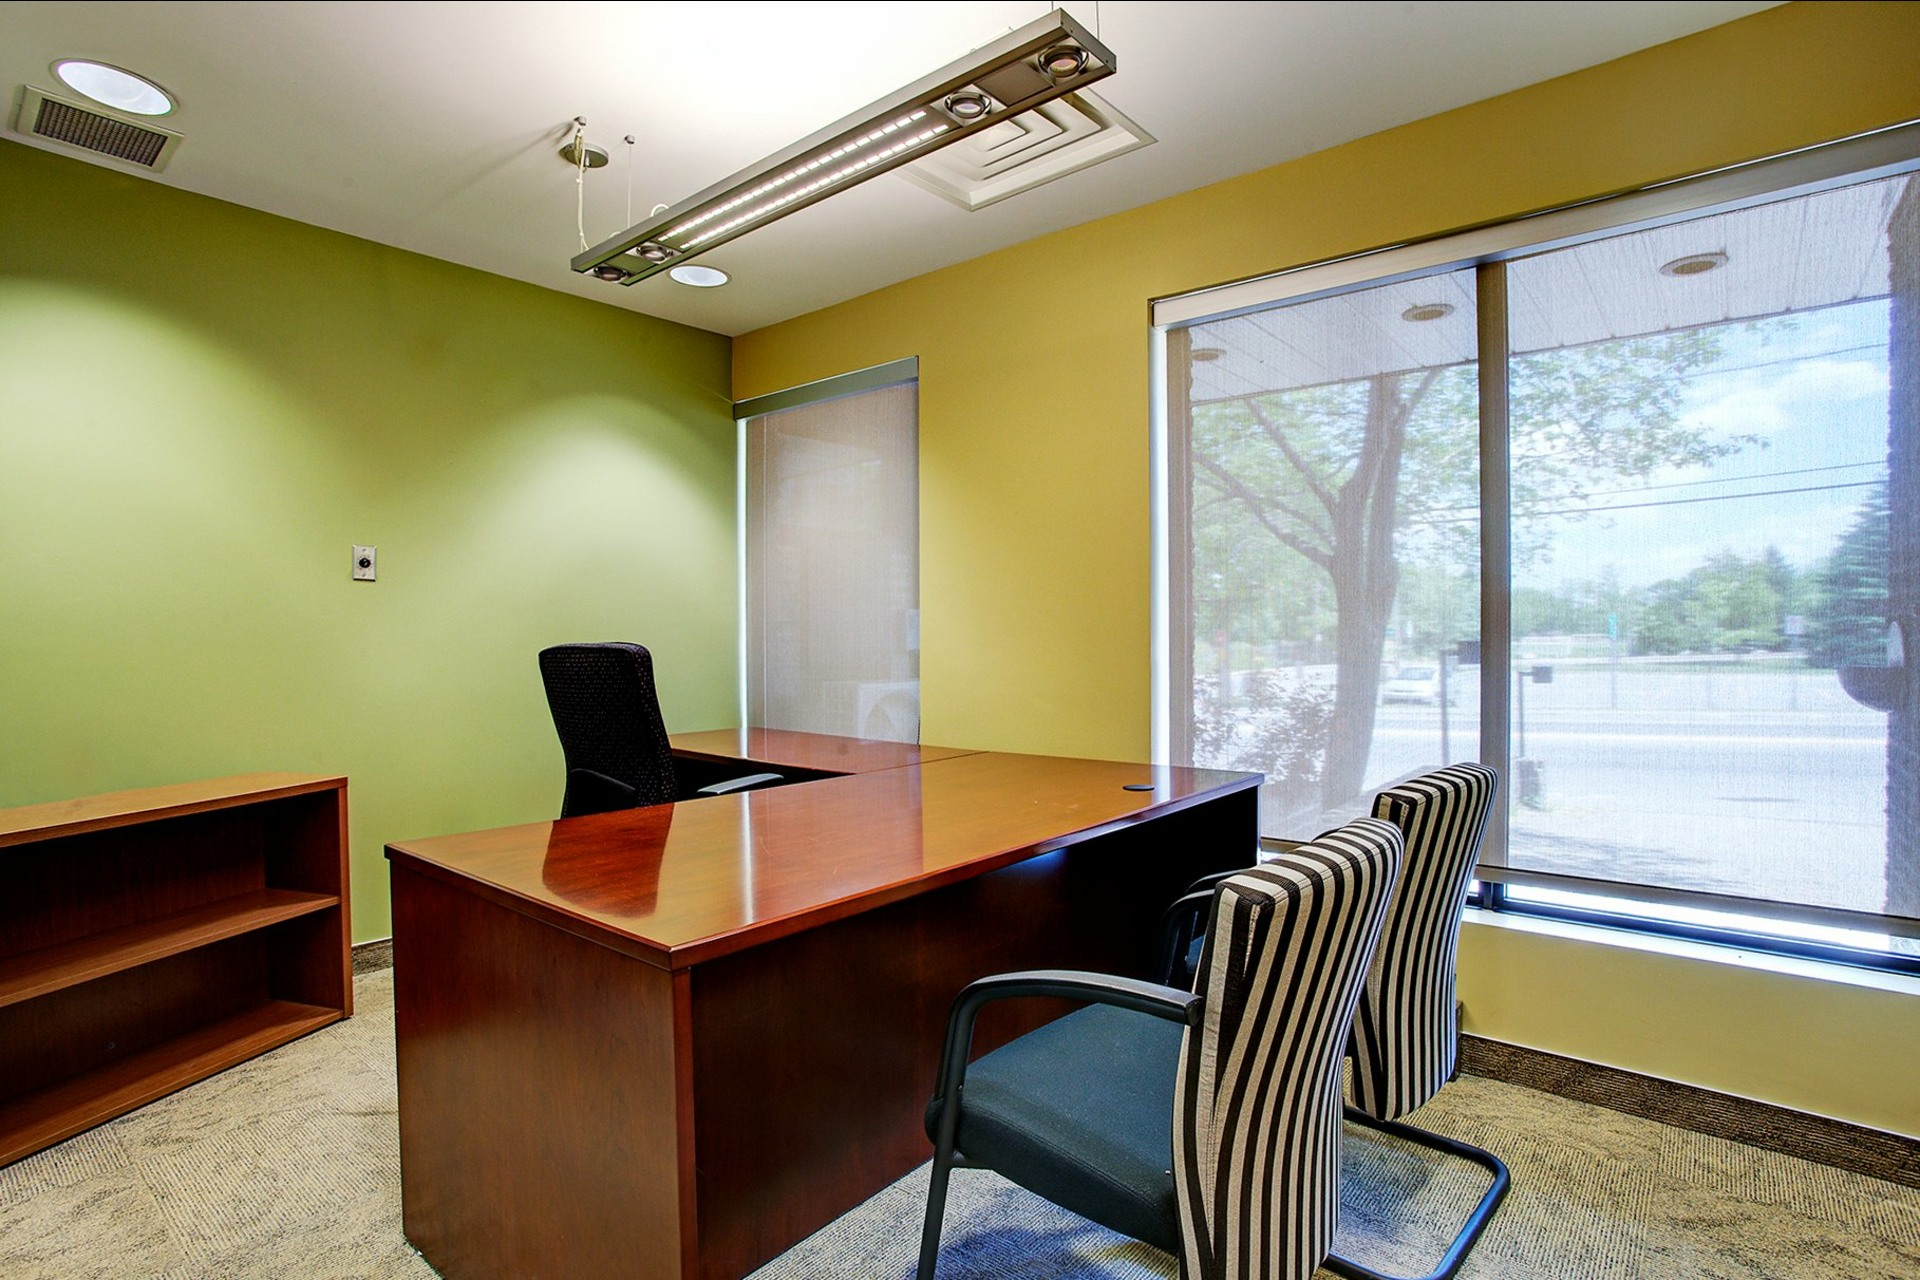 image 9 - Office For rent Rigaud